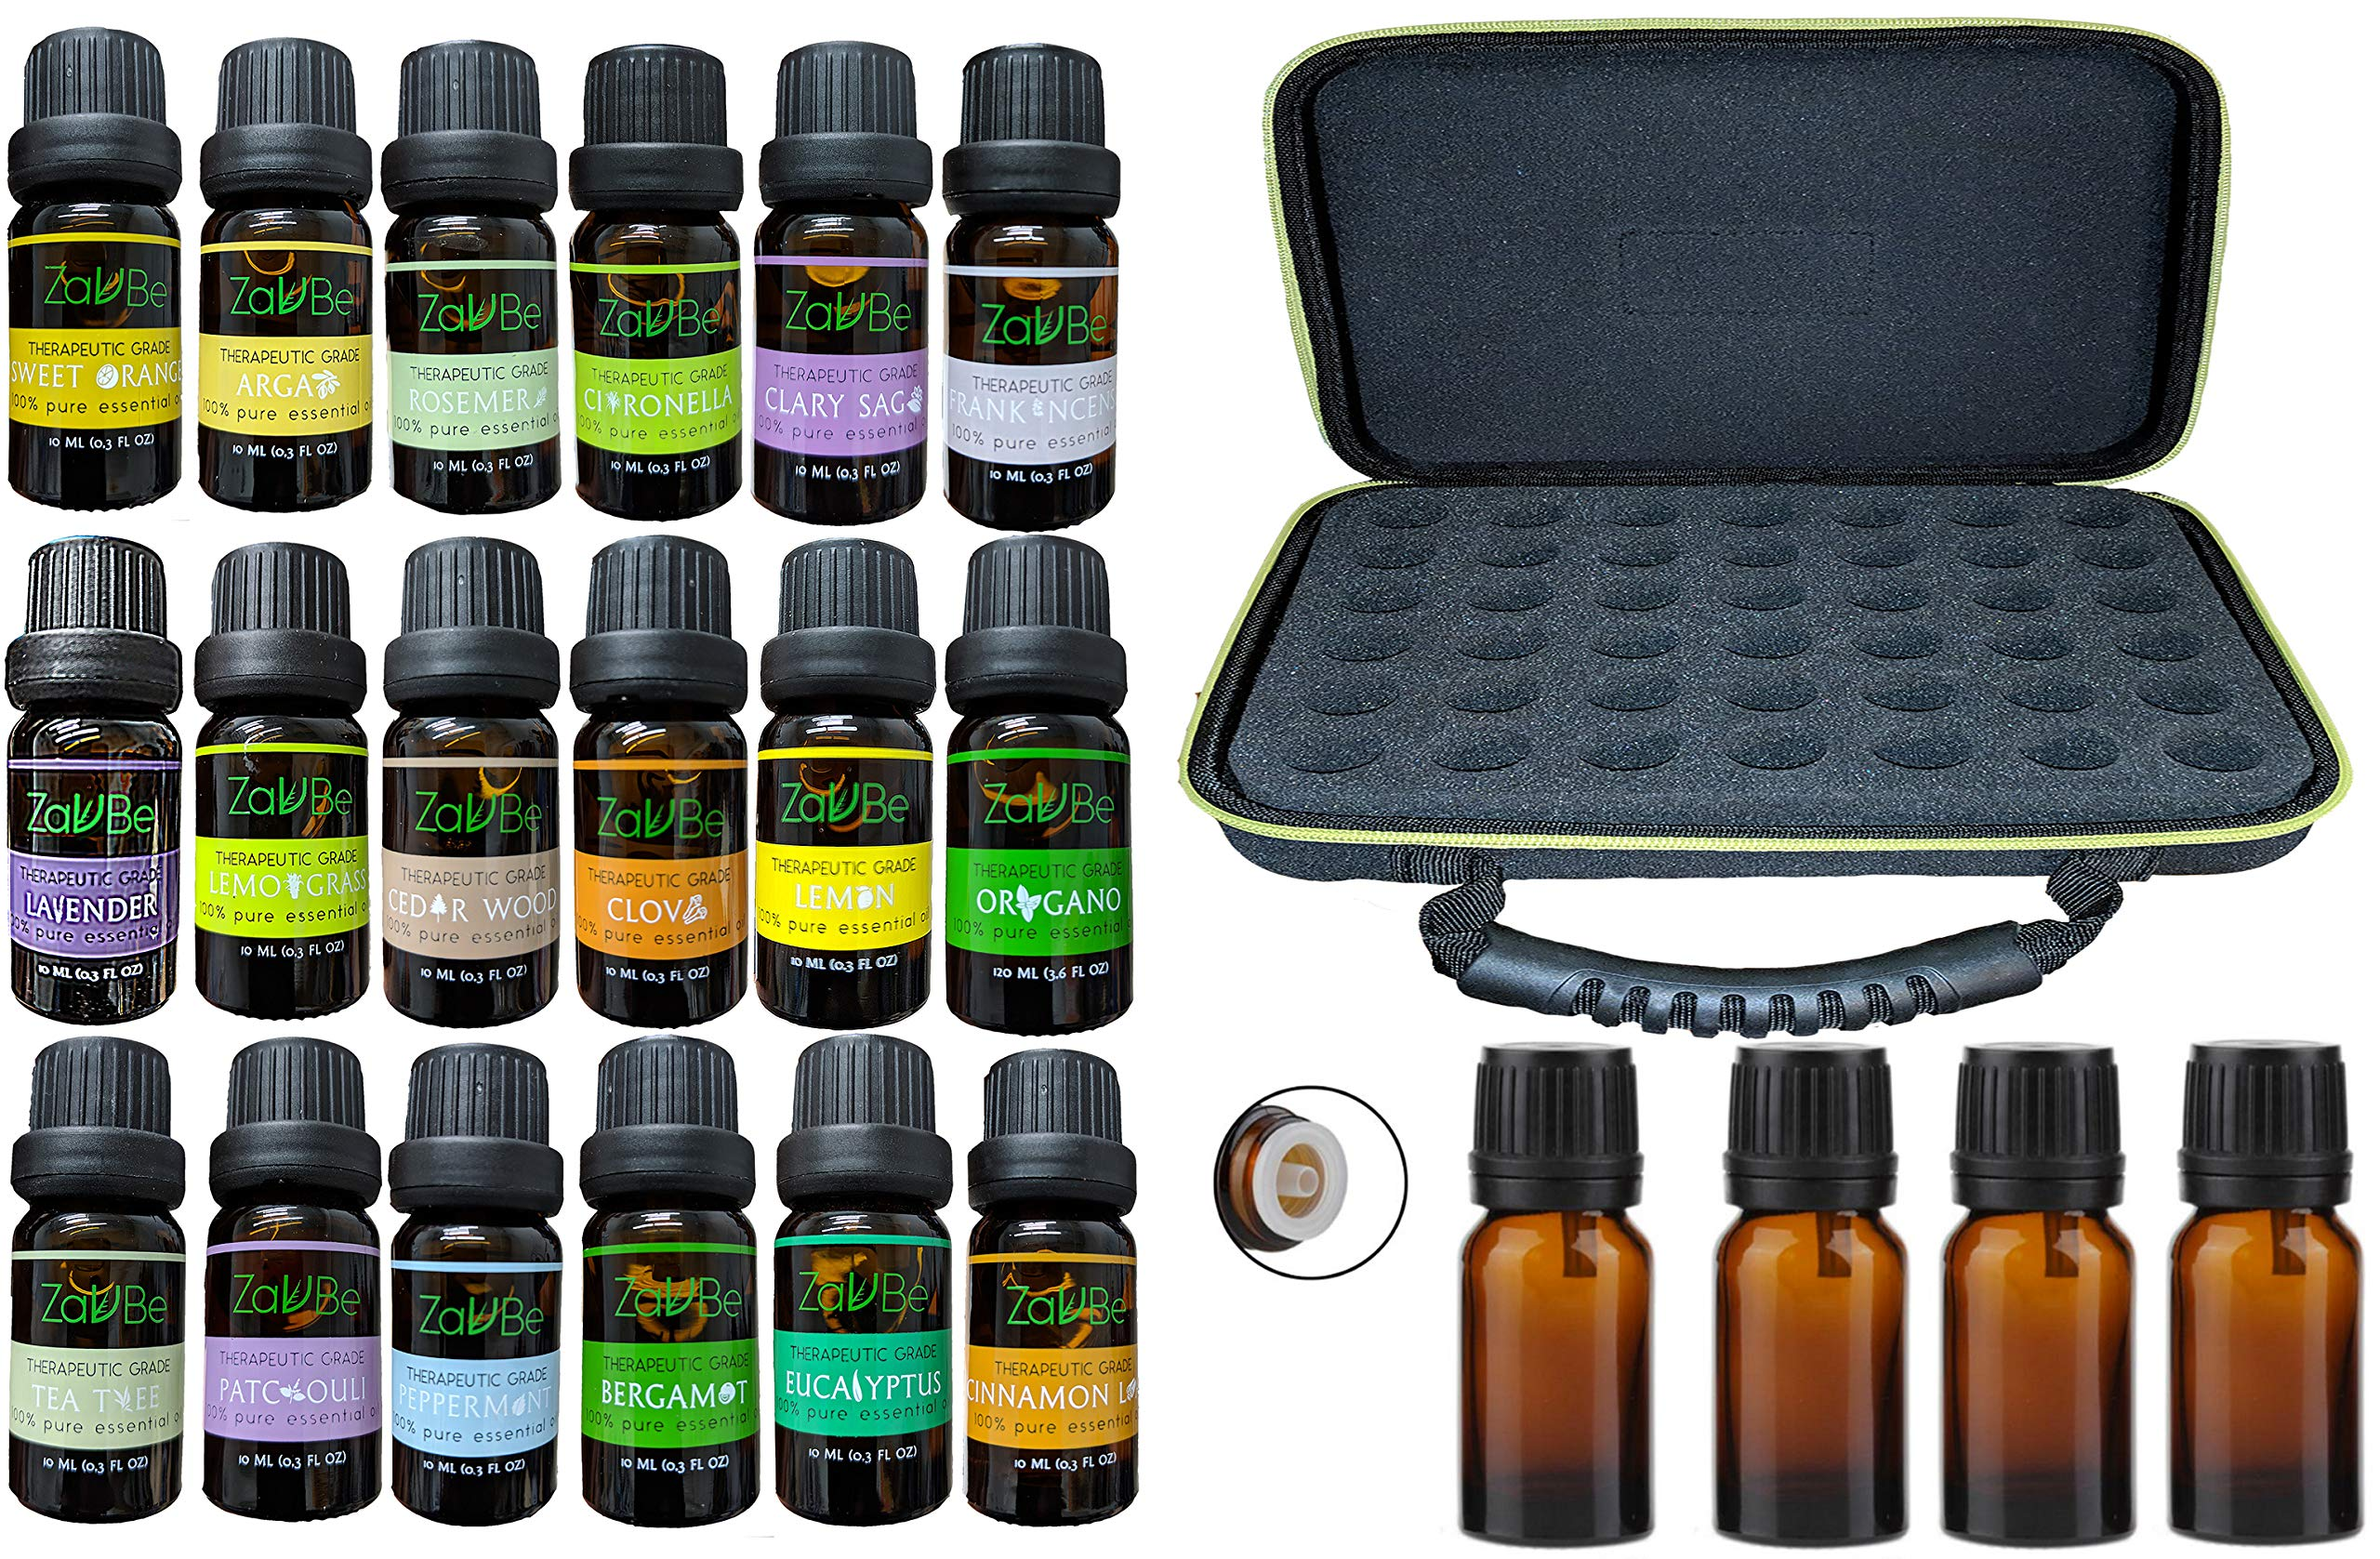 18 Essential Oil Set with FREE 42 Holes EVA Case Diffuser Aromatherapy 100% Therapeutic Grade Clove Clary Sage Lemon Bergamot Lavender Peppermint Tea Tree Argan Rosemary Frankincense Citronella by MABUA